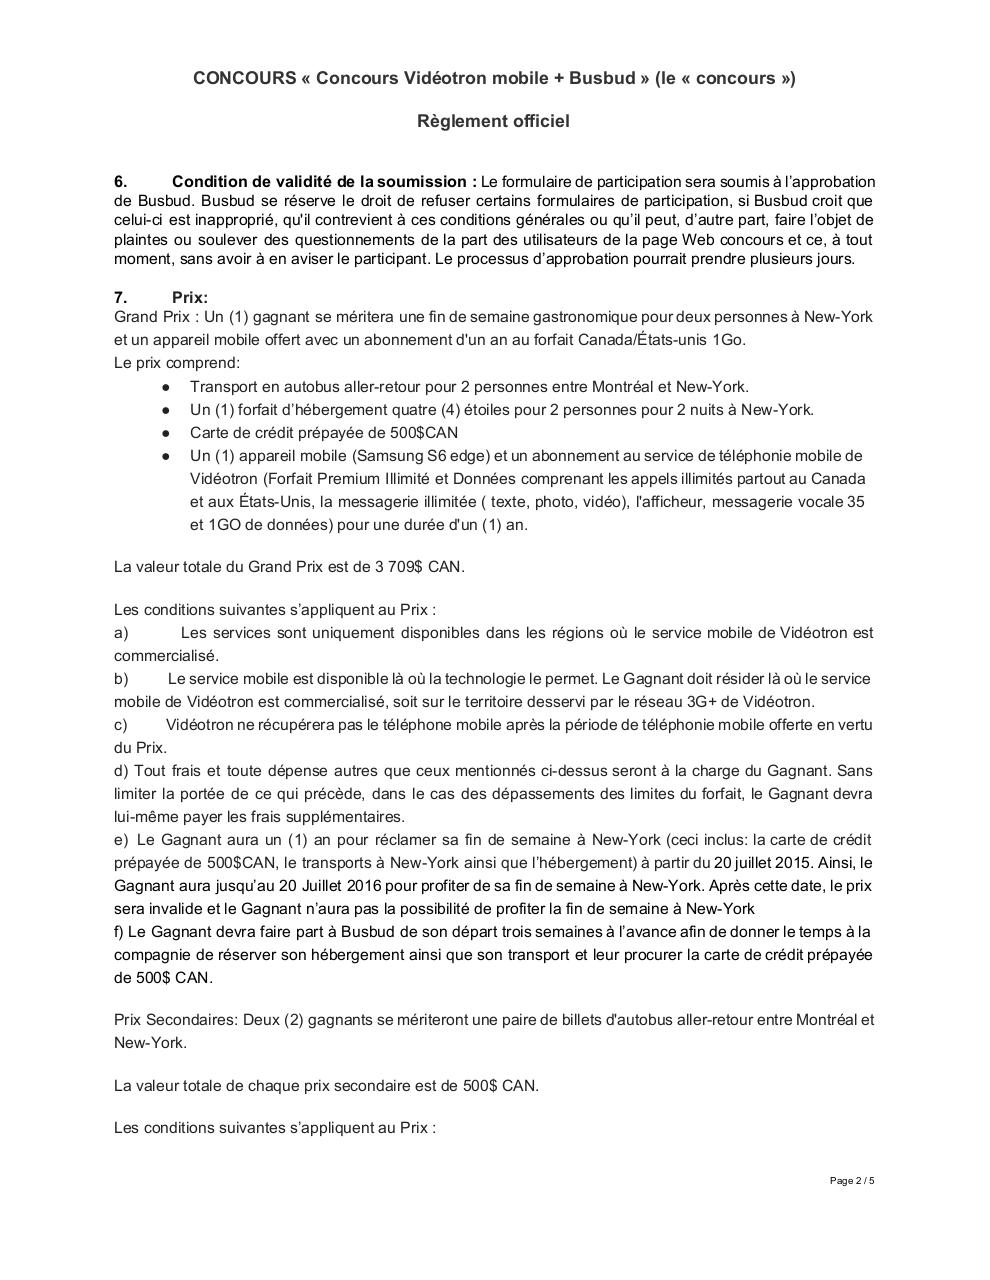 Preview of PDF document reglements-concours-videotron-mobile-busbud-juin-2015.pdf